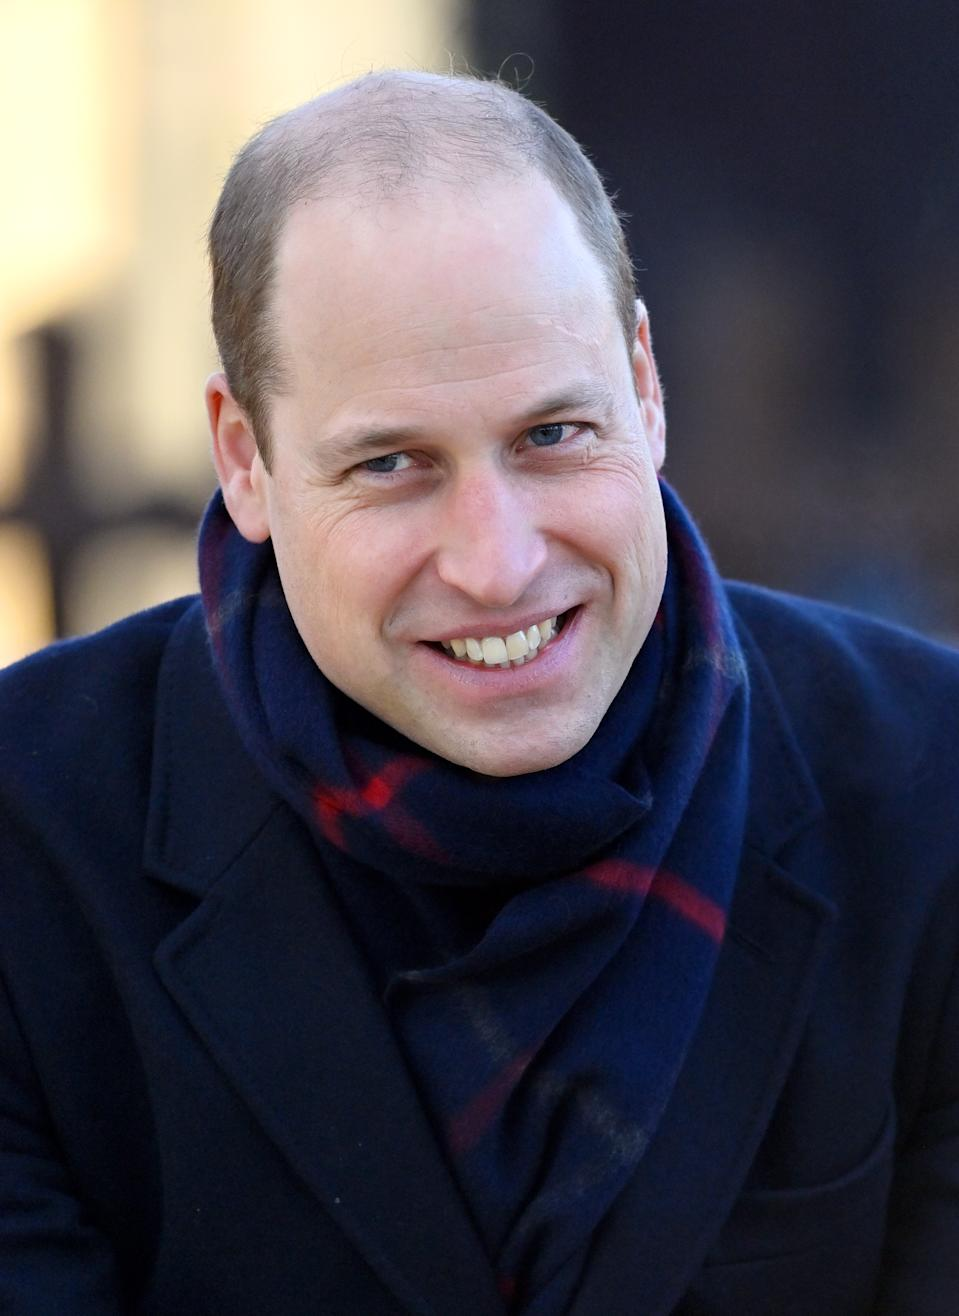 CARDIFF, UNITED KINGDOM - DECEMBER 08: (EMBARGOED FOR PUBLICATION IN UK NEWSPAPERS UNTIL 24 HOURS AFTER CREATE DATE AND TIME) Prince William, Duke of Cambridge visits Cardiff Castle on December 8, 2020 in Cardiff, Wales. The Duke and Duchess of Cambridge are undertaking a short tour of the UK, using the Royal train, ahead of the Christmas holidays to pay tribute to the inspiring work of individuals, organisations and initiatives across the country that have gone above and beyond to support their local communities during the coronavirus pandemic. (Photo by Pool/Max Mumby/Getty Images)